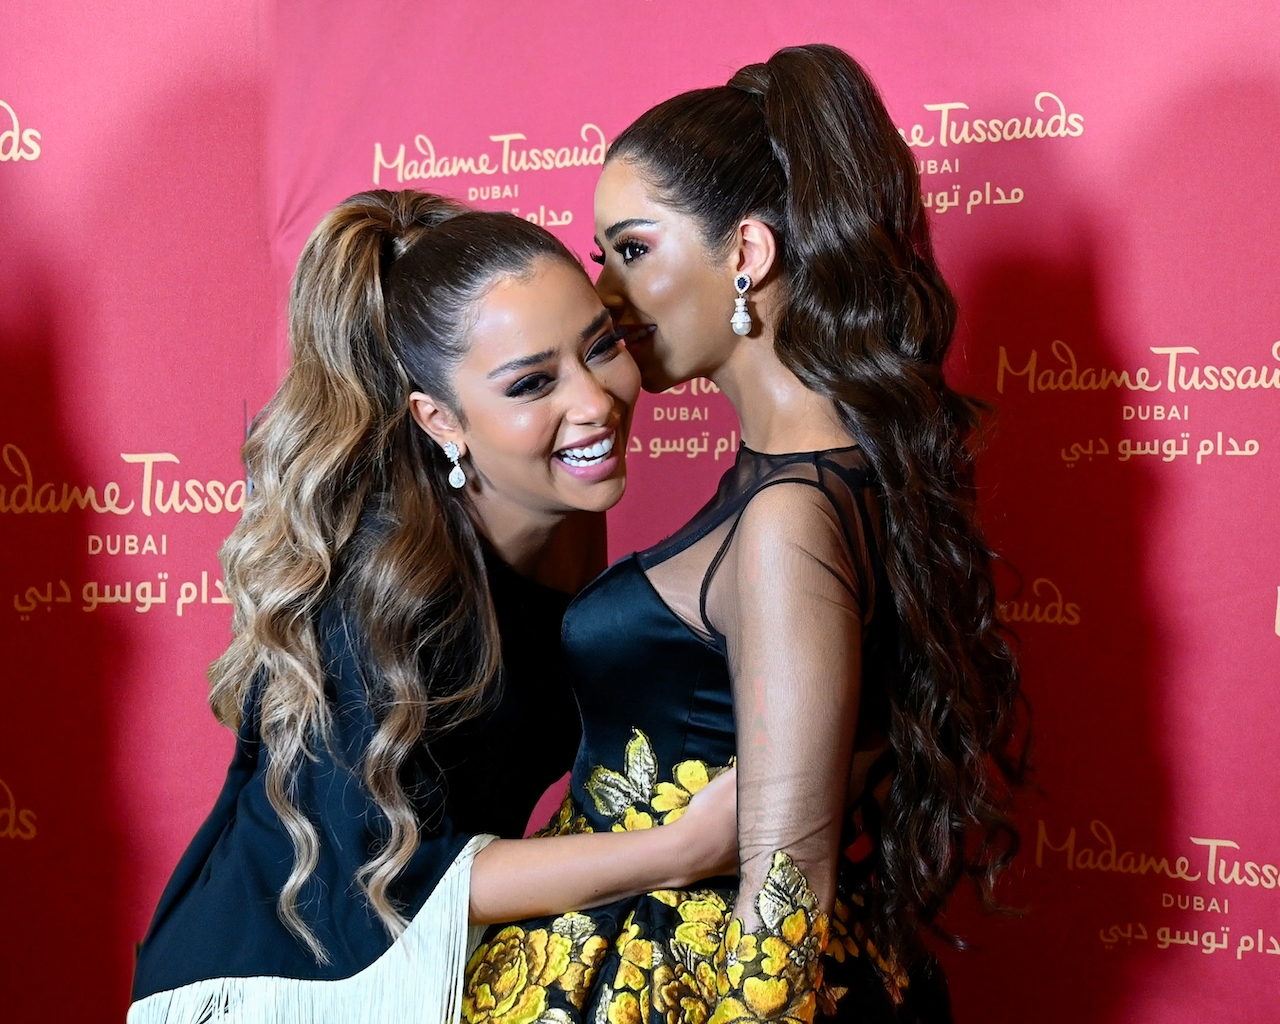 Pictures: Madame Tussauds Dubai First Wax Figure is Balqees Fathi